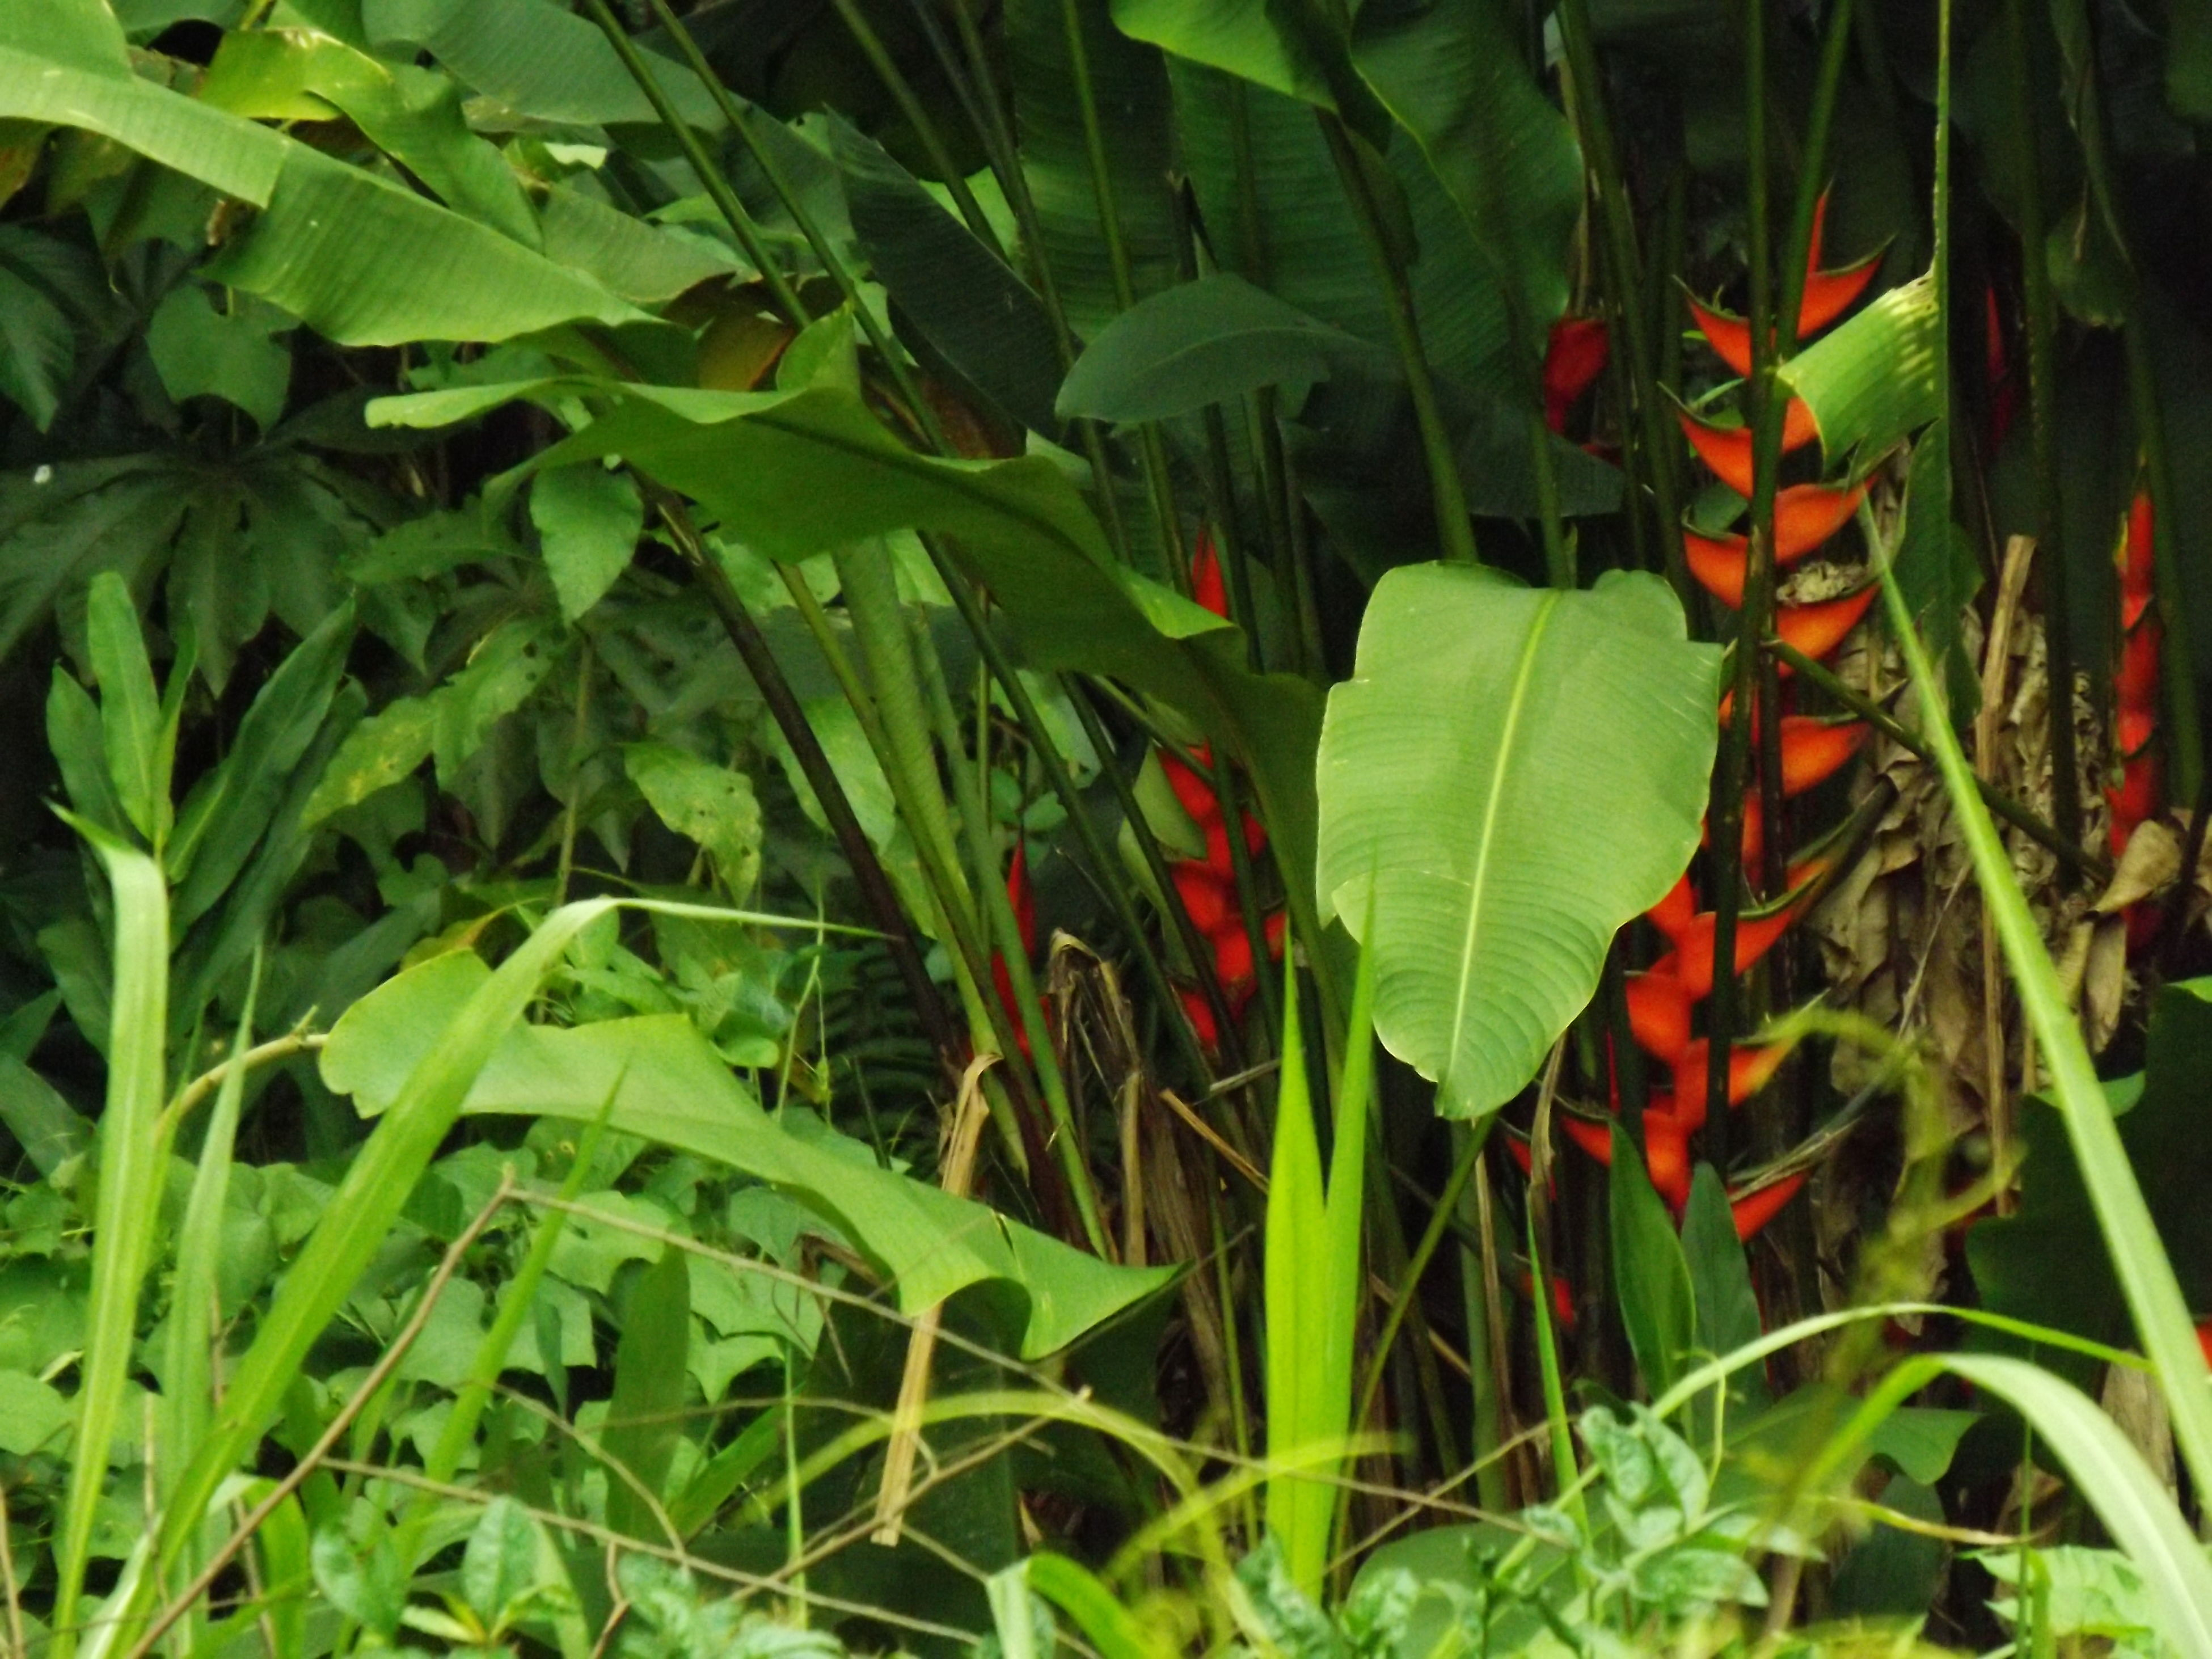 growth, green color, plant, red, leaf, nature, field, freshness, beauty in nature, grass, growing, close-up, day, outdoors, tranquility, green, no people, lush foliage, stem, agriculture